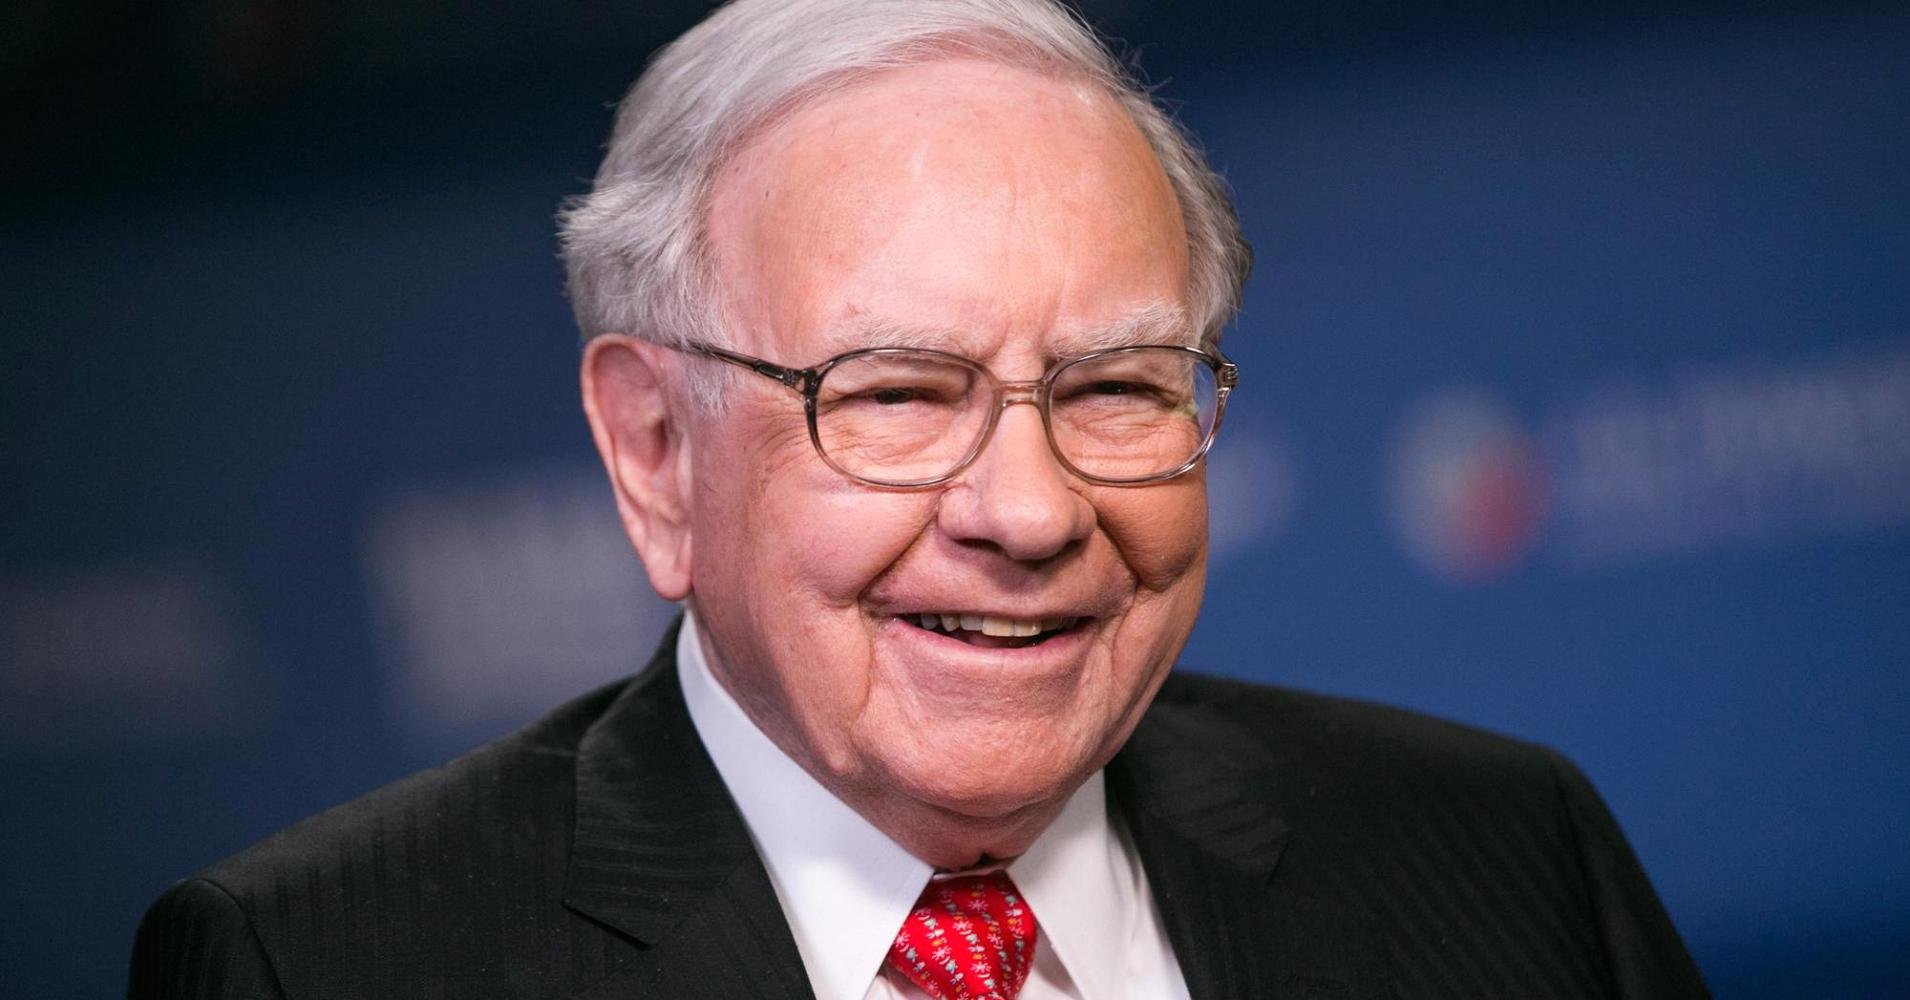 Investir en bourse selon Warren Buffett